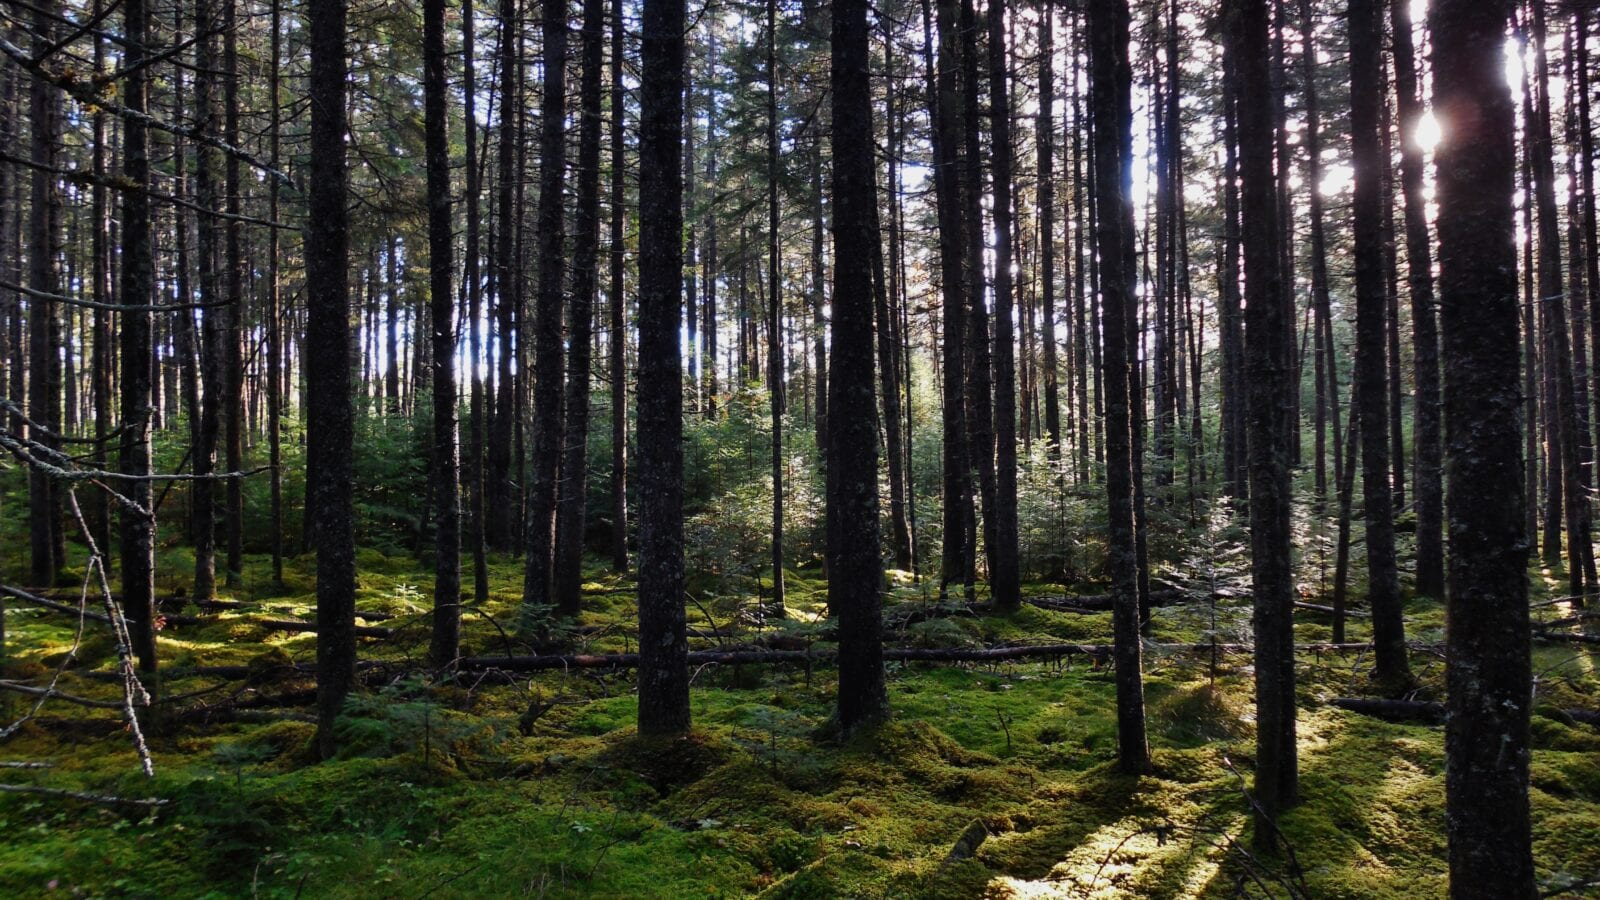 photo of a stand of trees in a forest